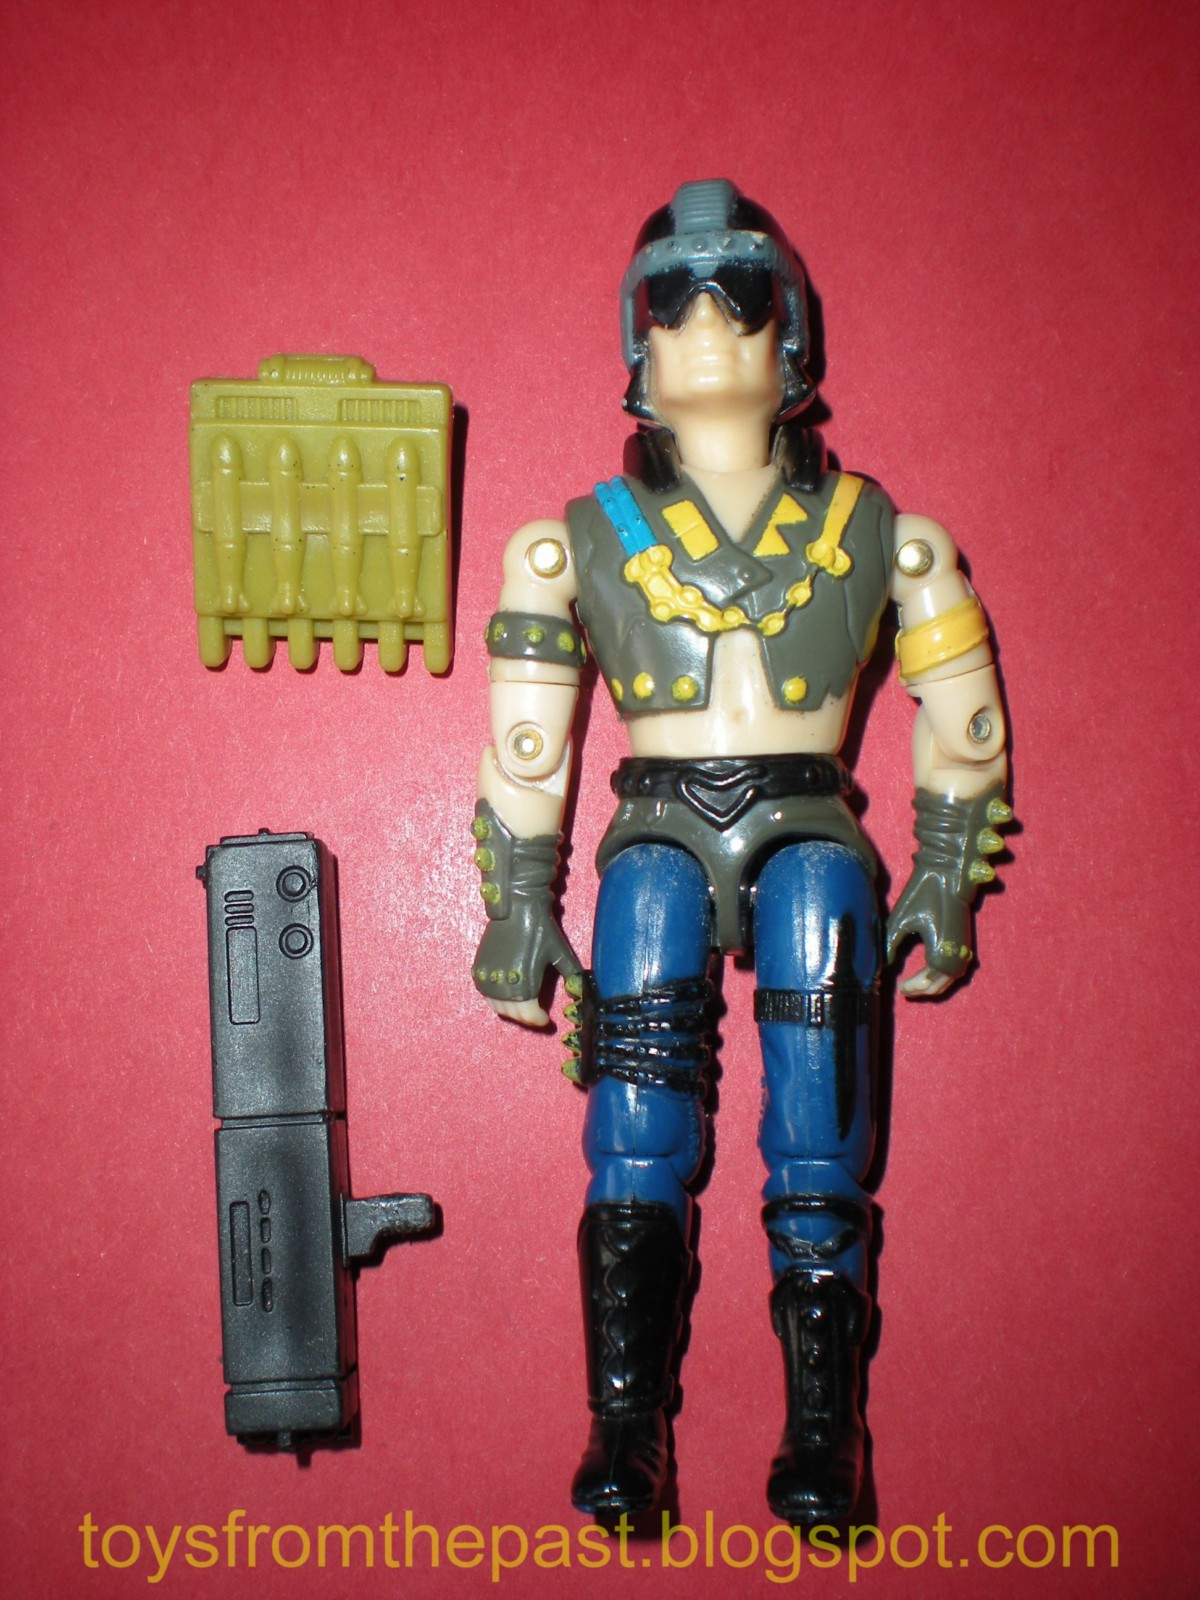 Toys from the Past: #155 THE CORPS! – WAVE 1 (III) (1986)